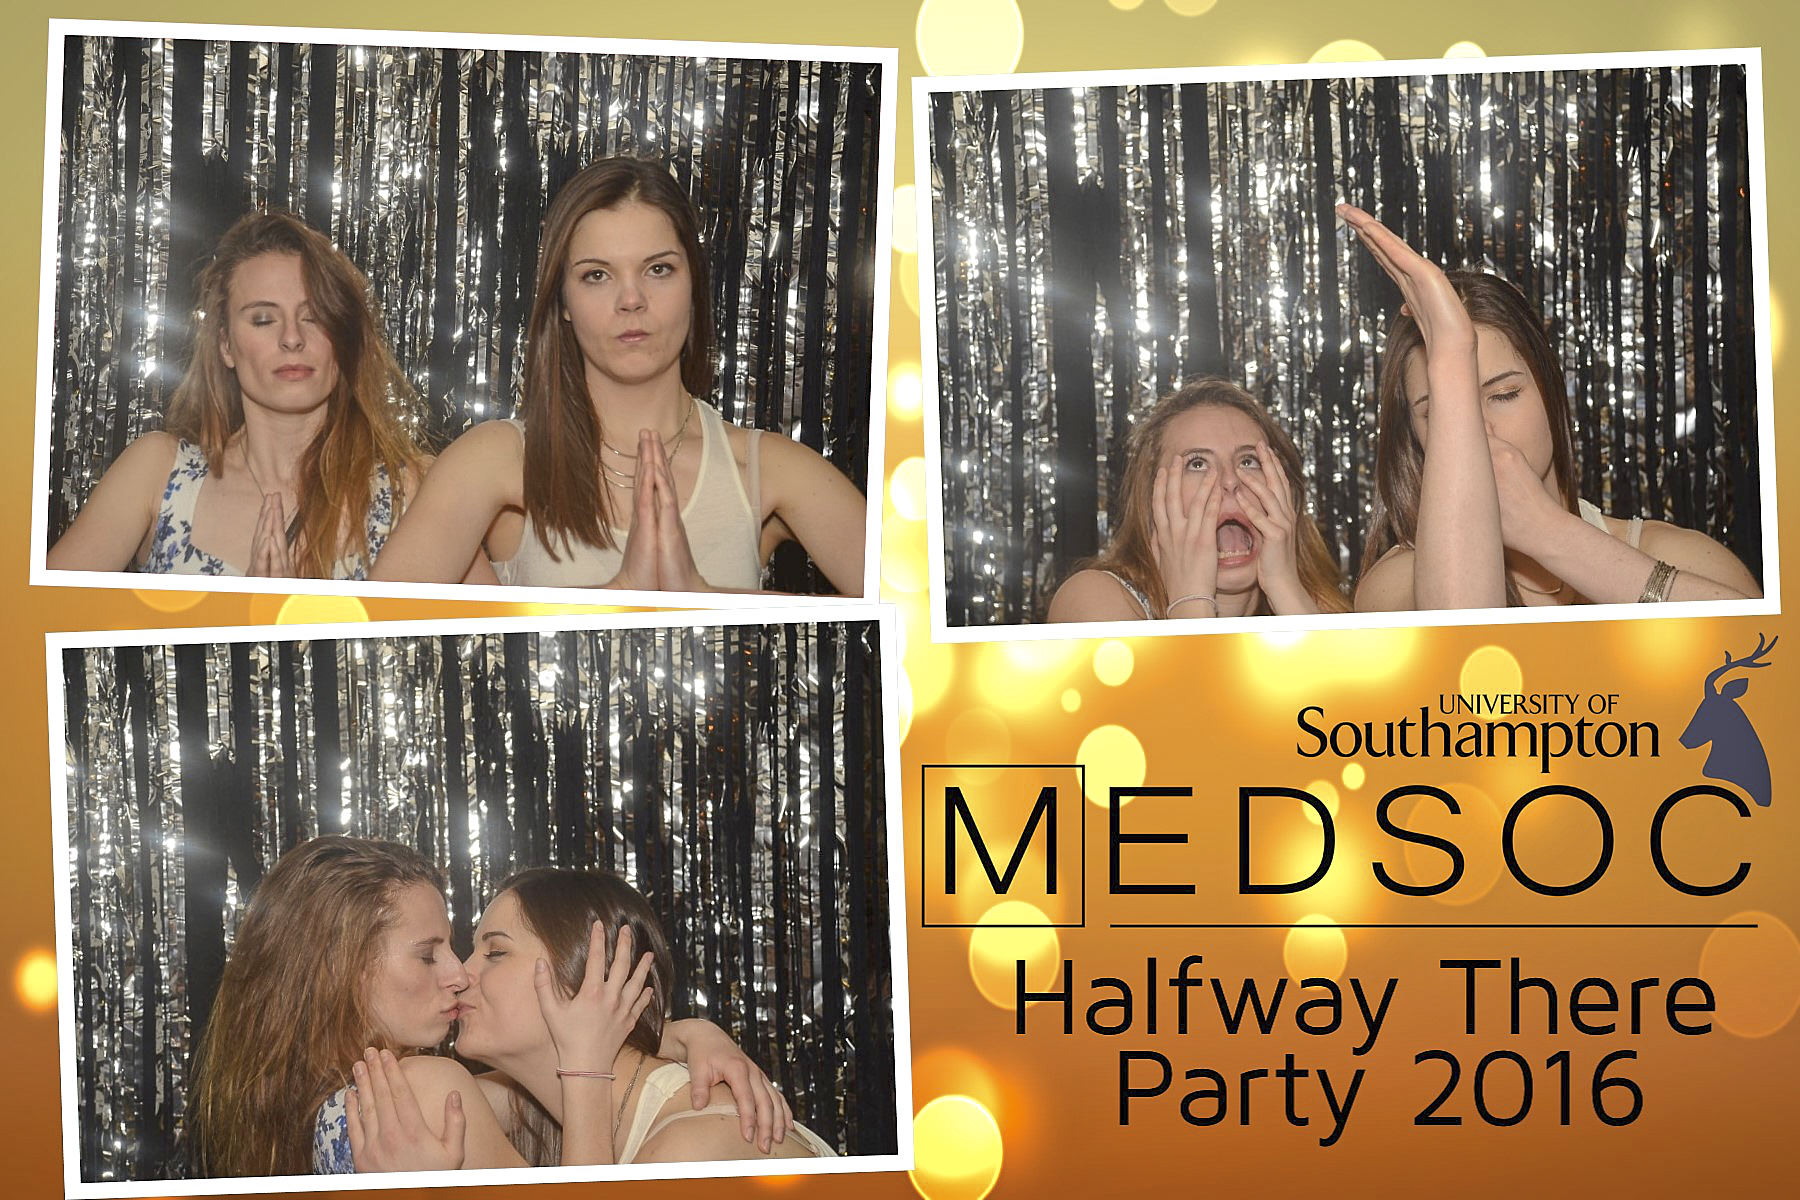 MedSoc Halfway There Party 2016 DS010635.jpg